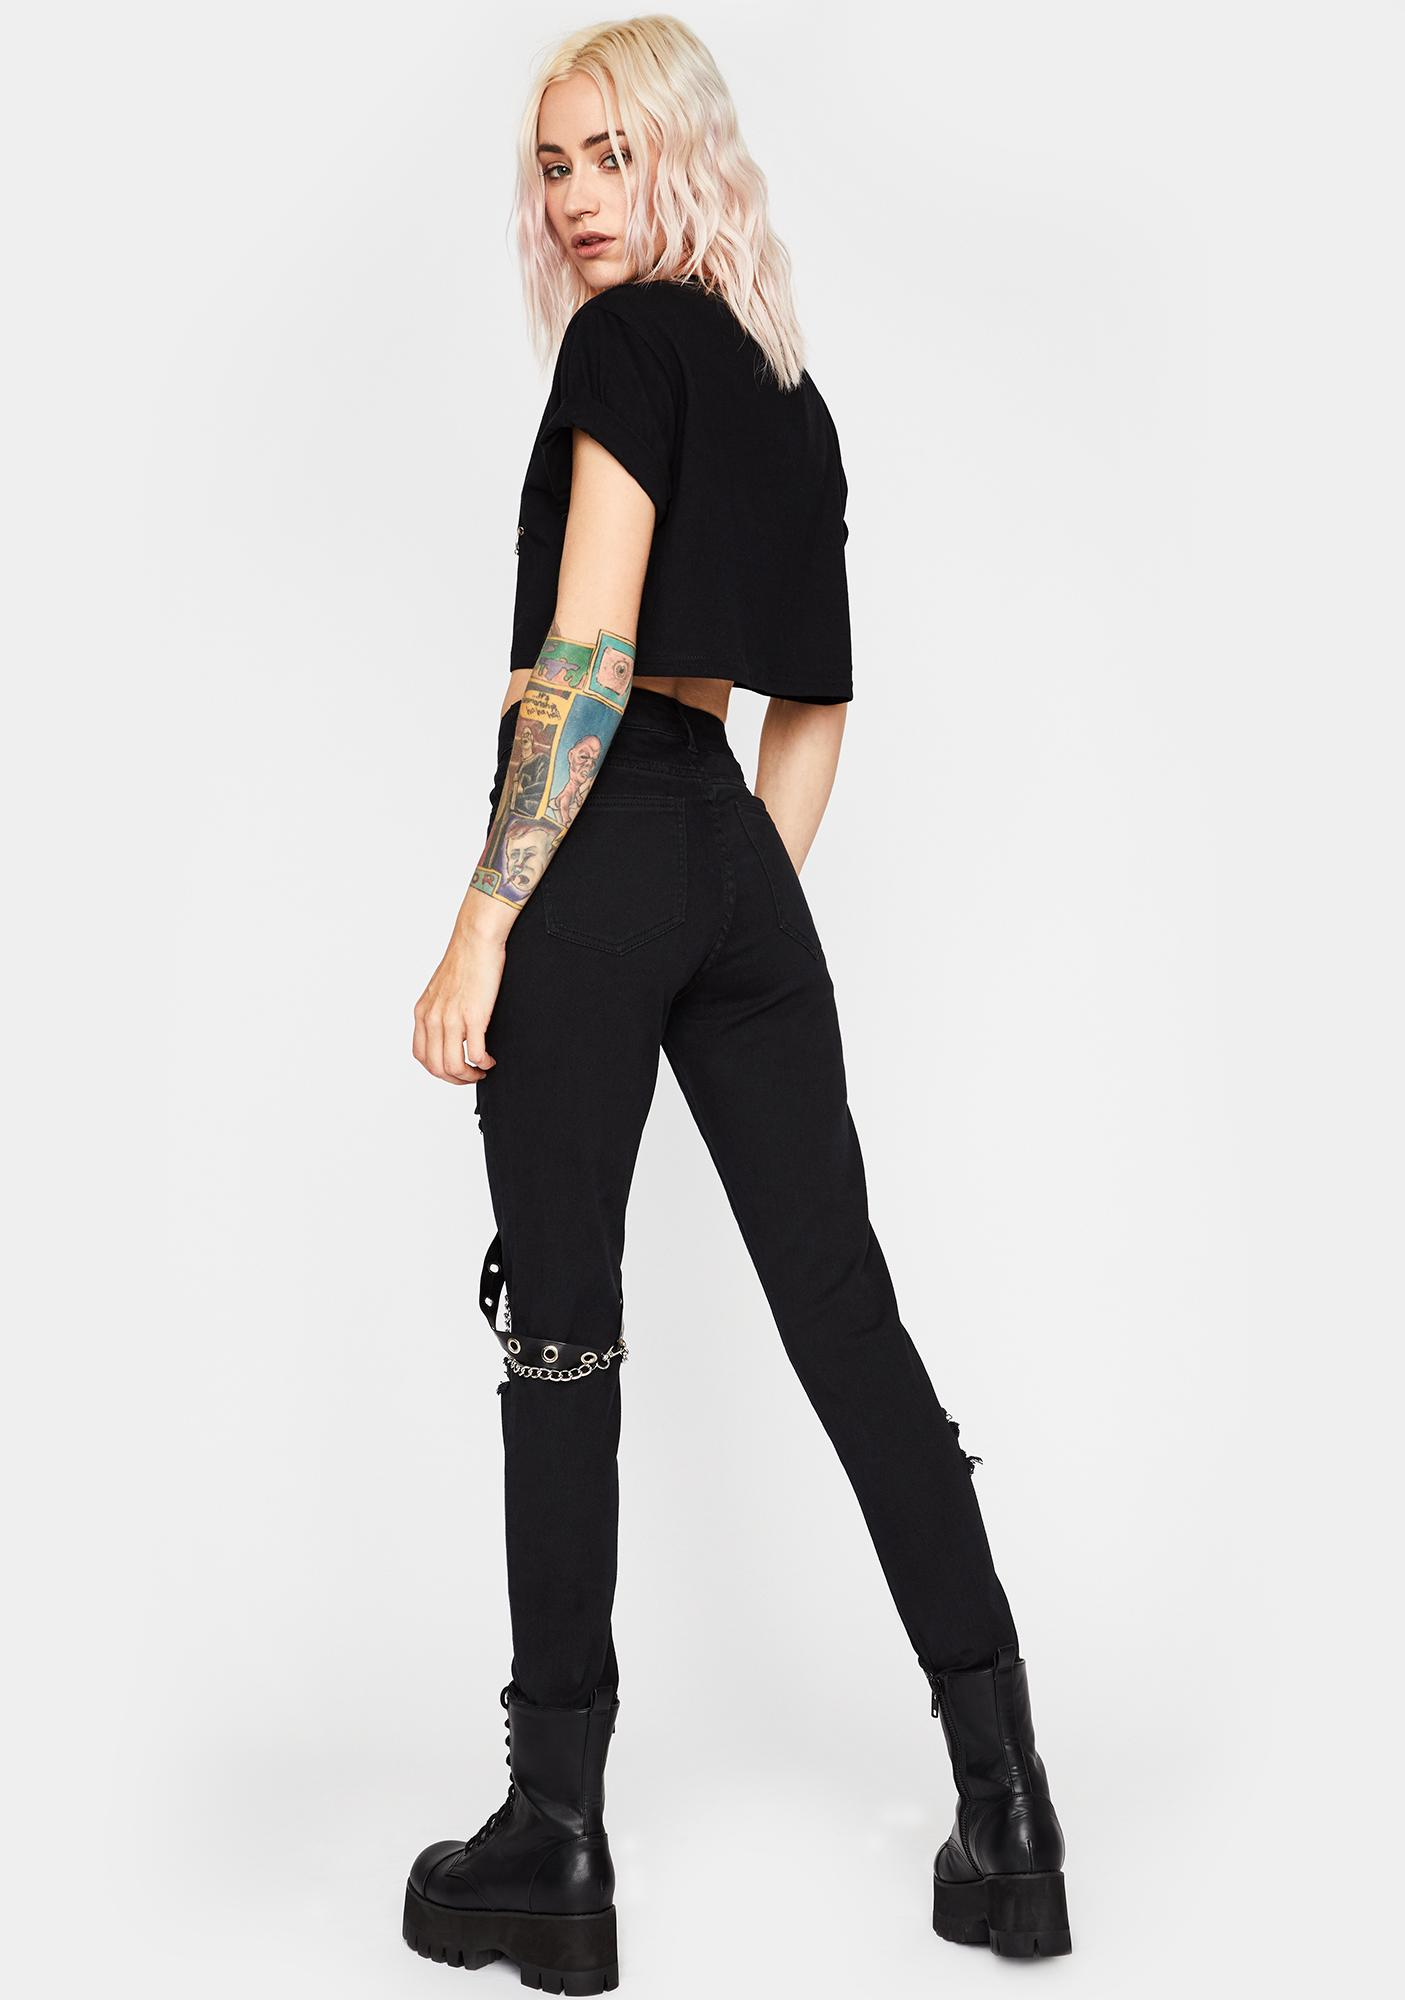 Never Scared Harness Pants